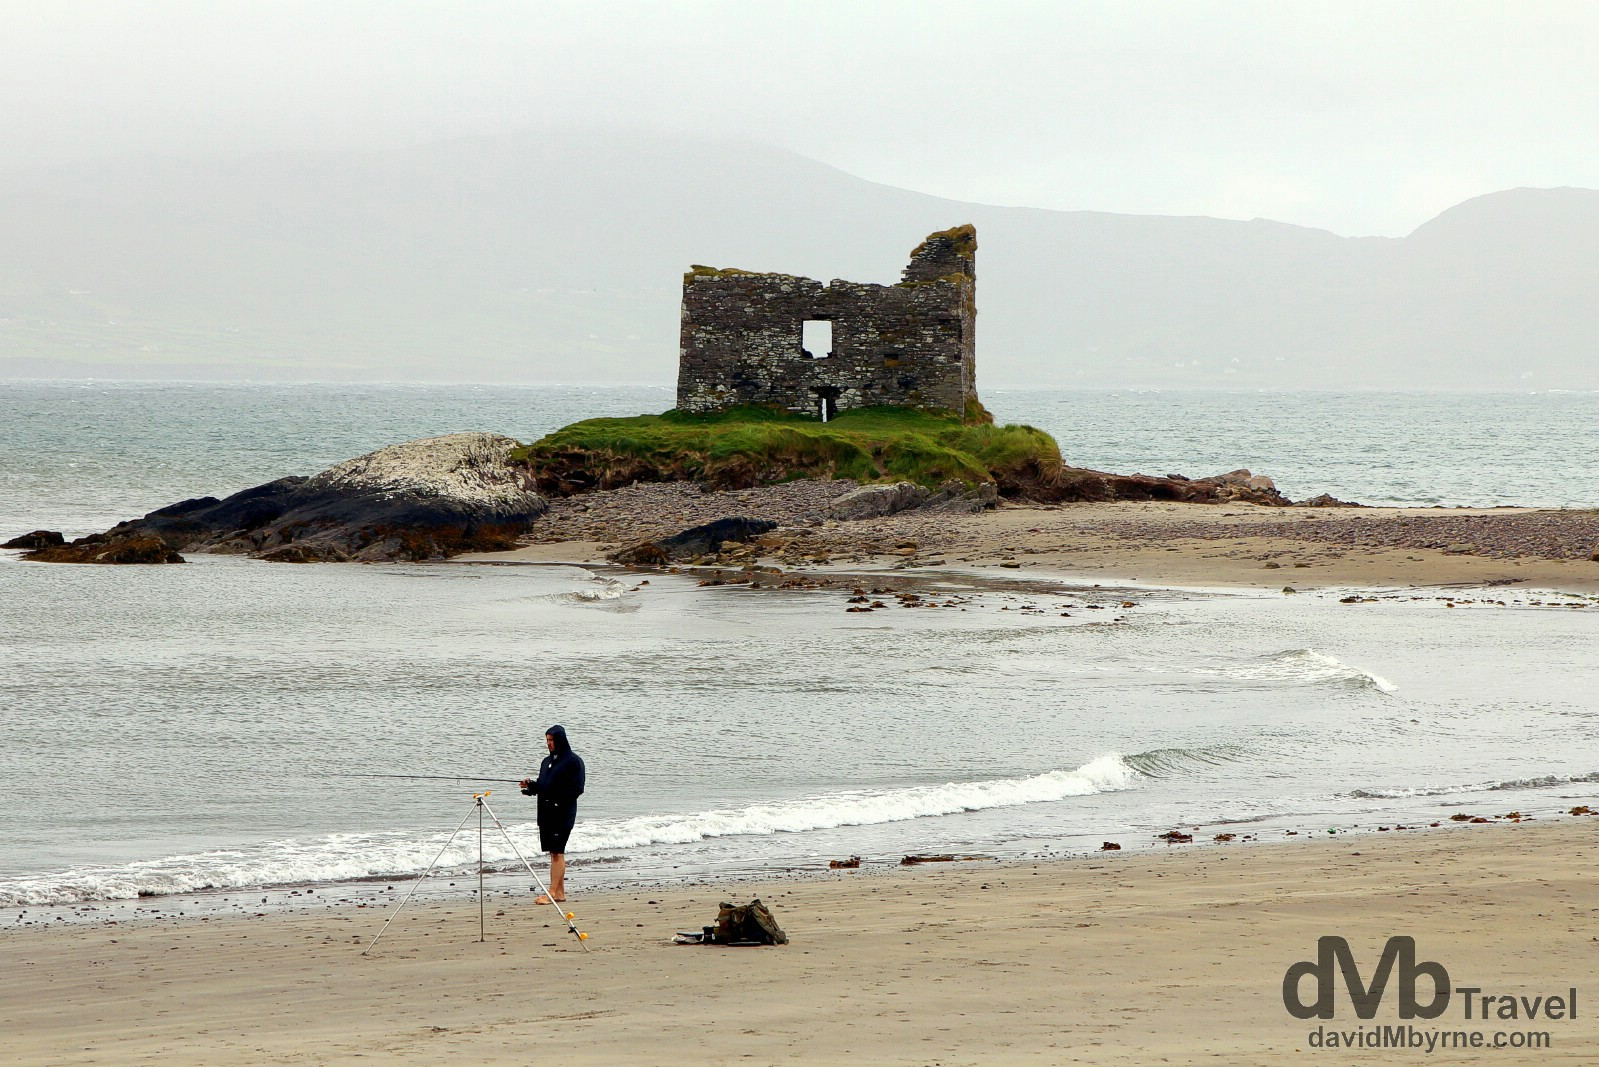 McCarthy's Mor, the famous 'castle on the beach', in Ballinskelligs, Co. Kerry, Ireland. August 28, 2014.